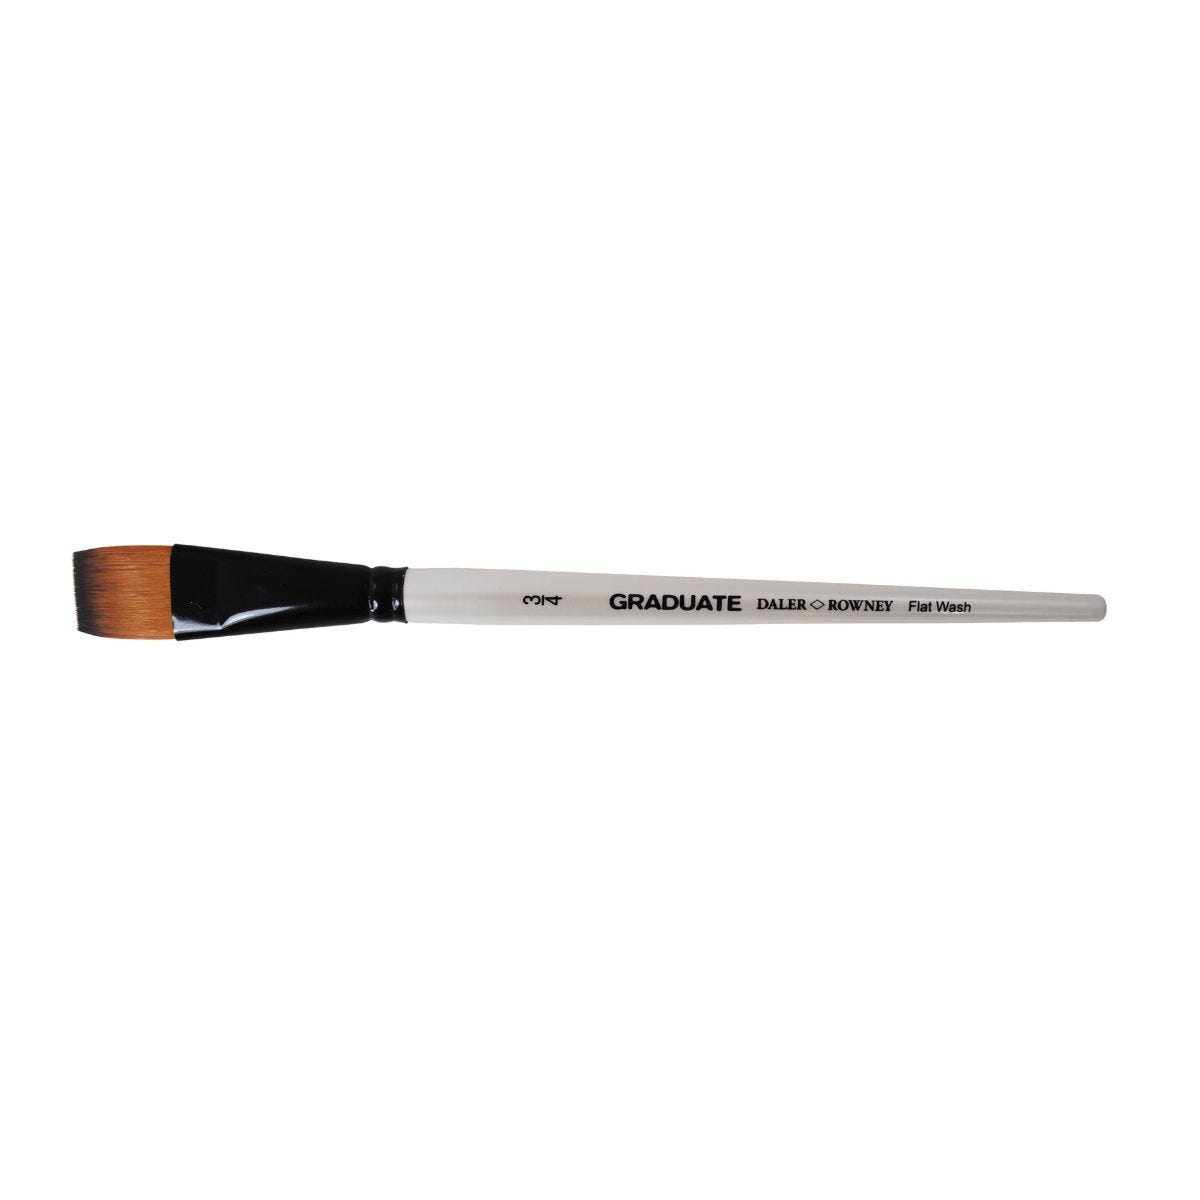 Daler Rowney Graduate Brush Flat Wash Three Quarter